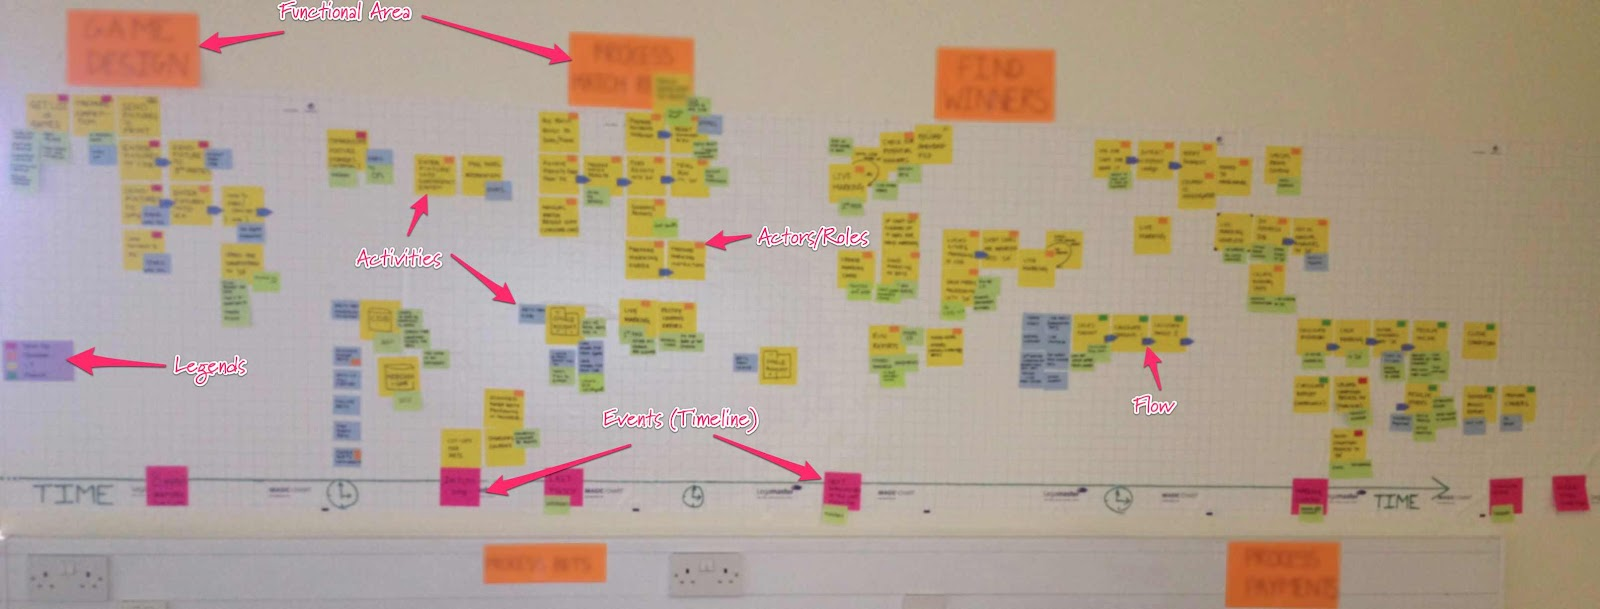 Process timeline as is